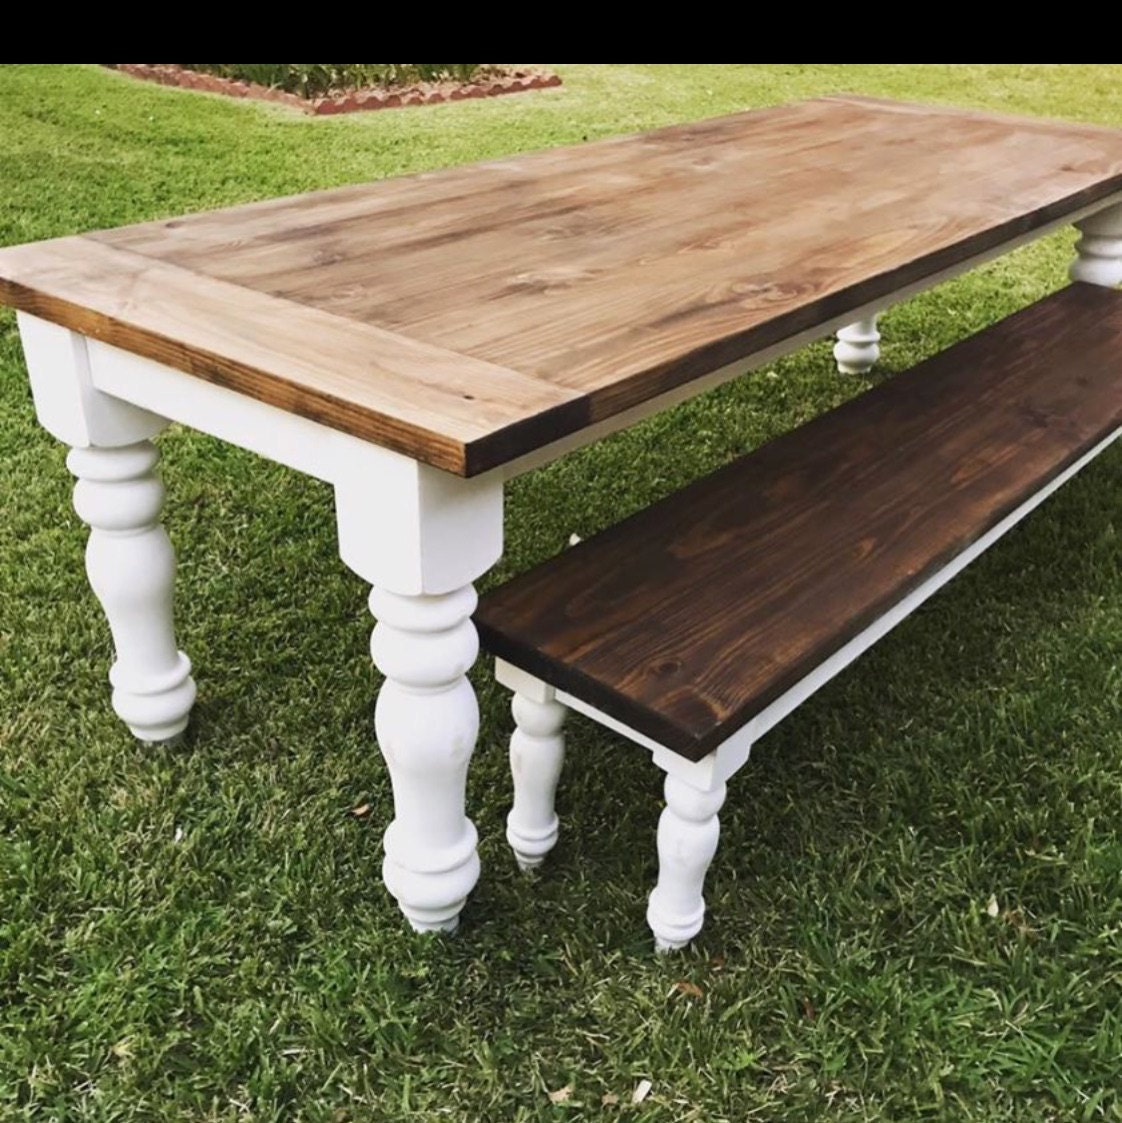 Unfinished Farmhouse Dining Table Legs Wood Legs Turned